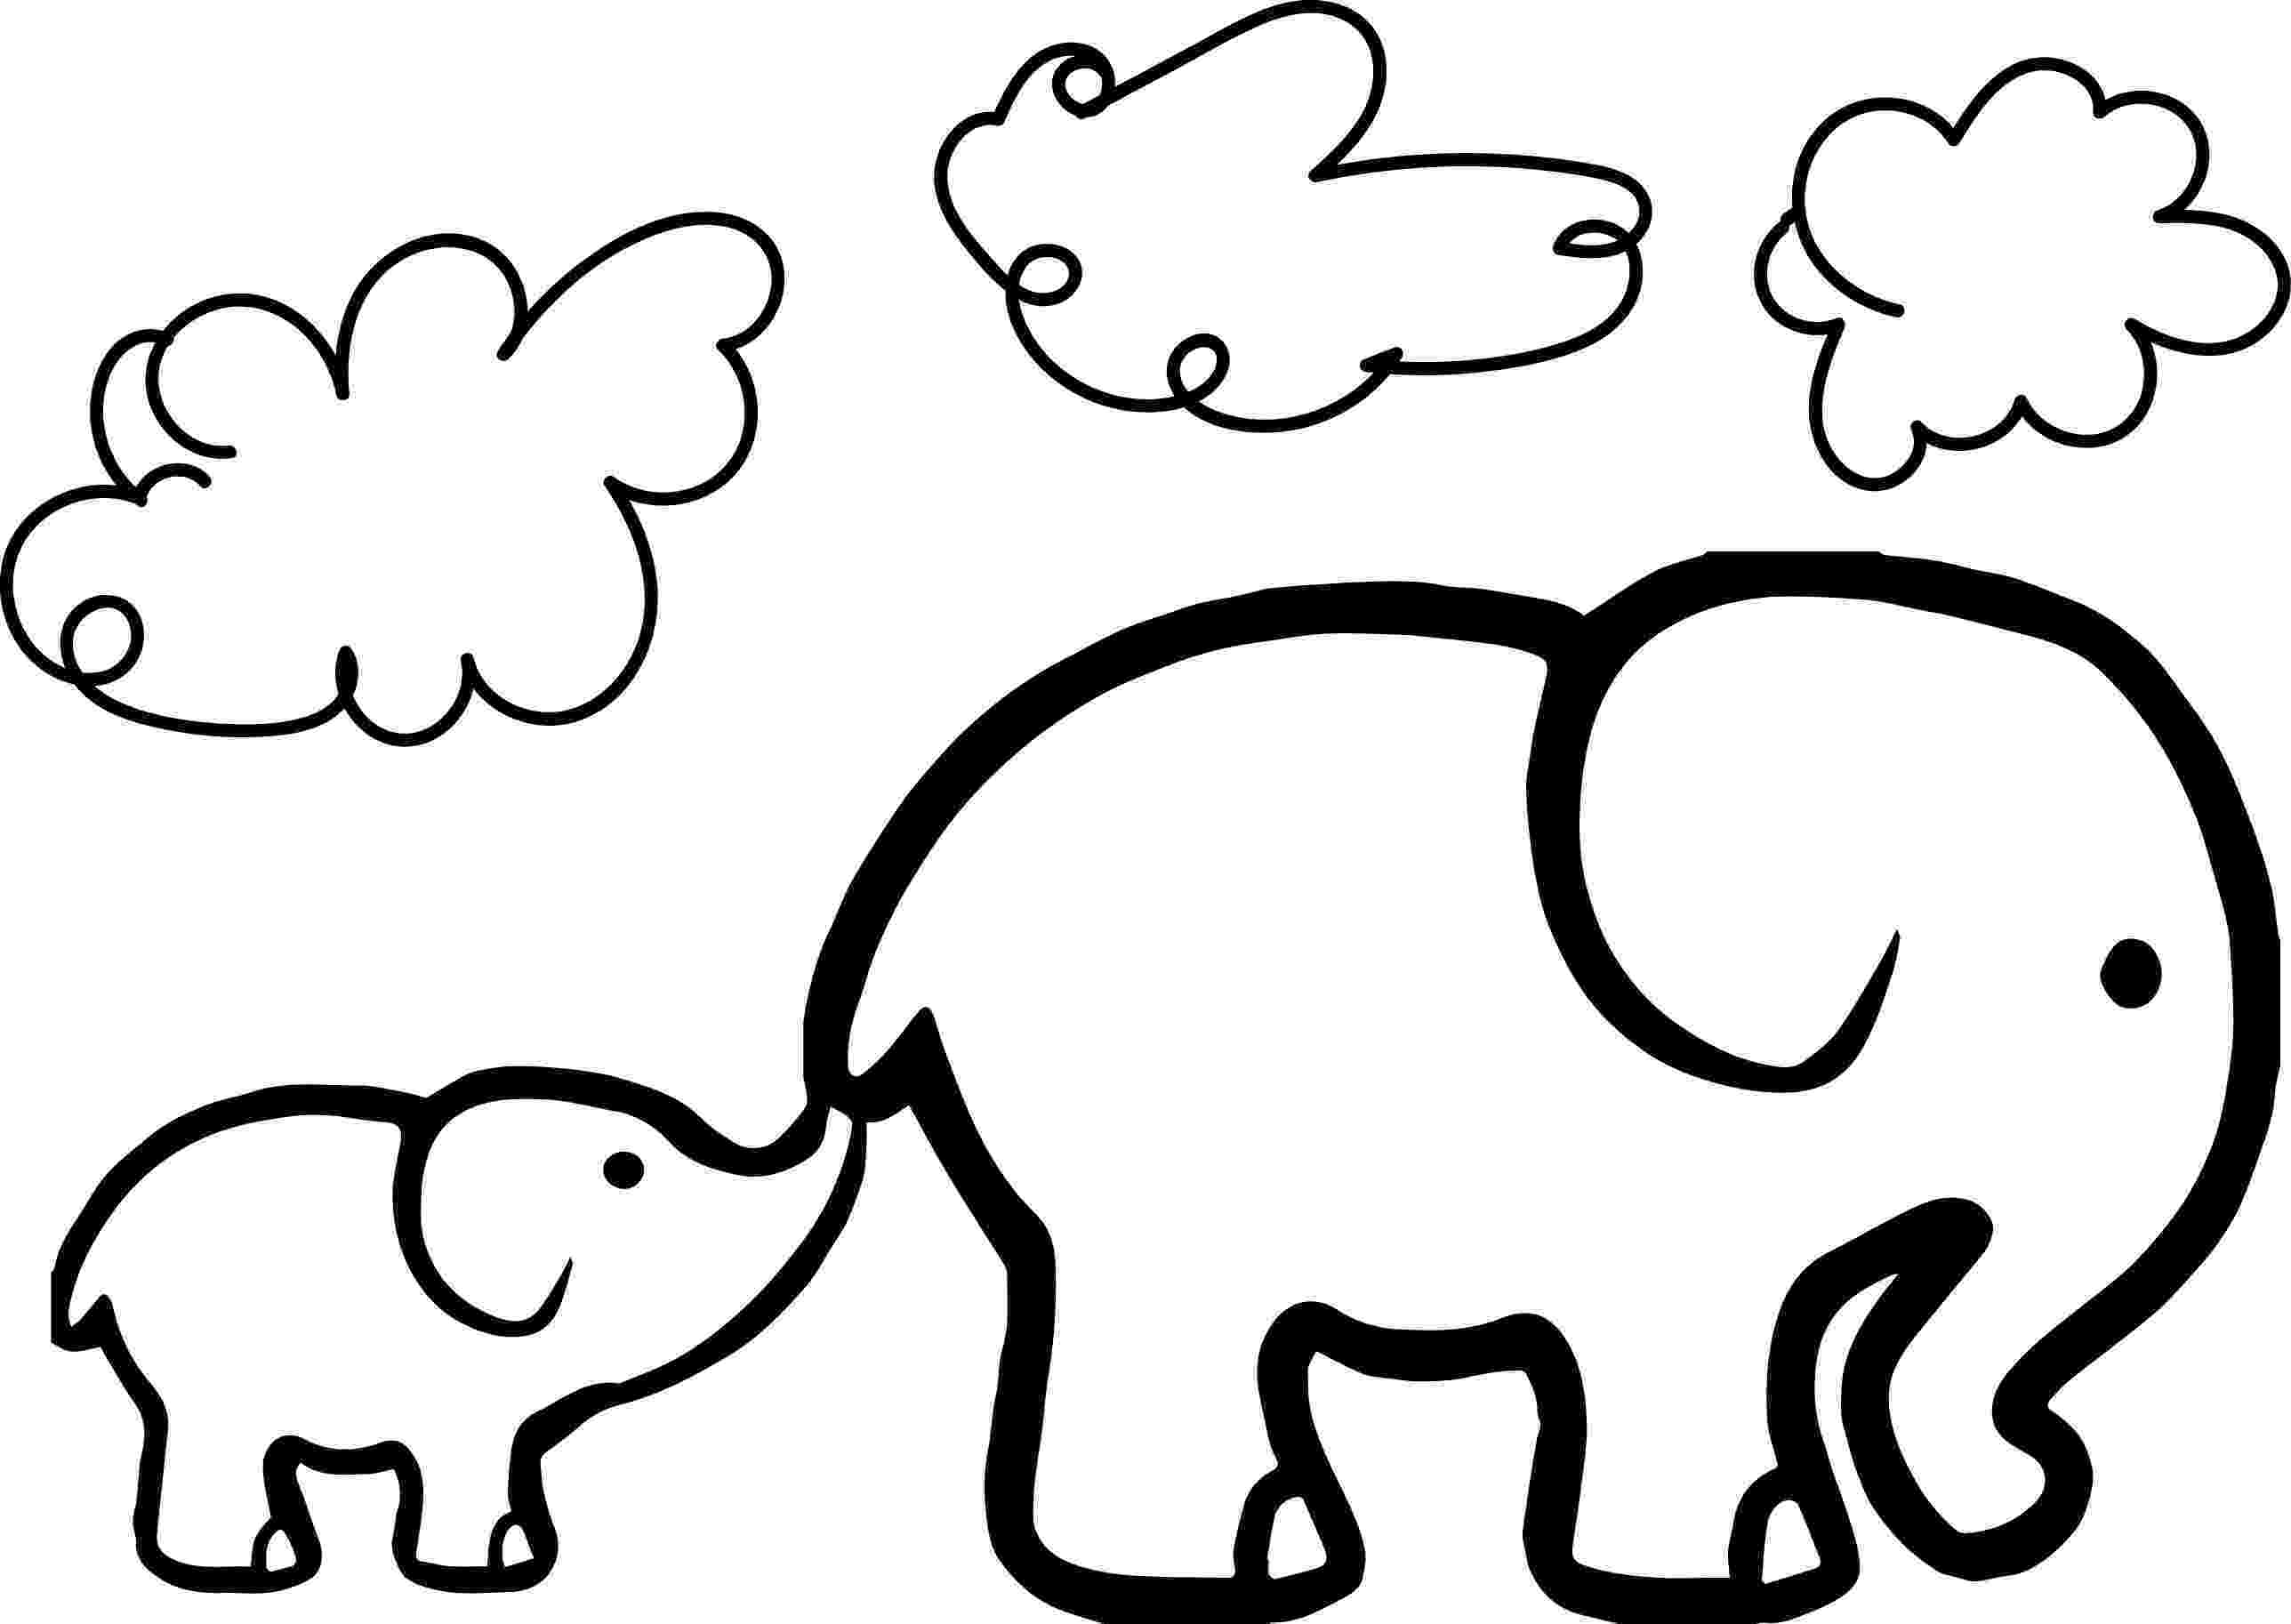 elephant coloring sheet elephant coloring pages free download on clipartmag coloring sheet elephant